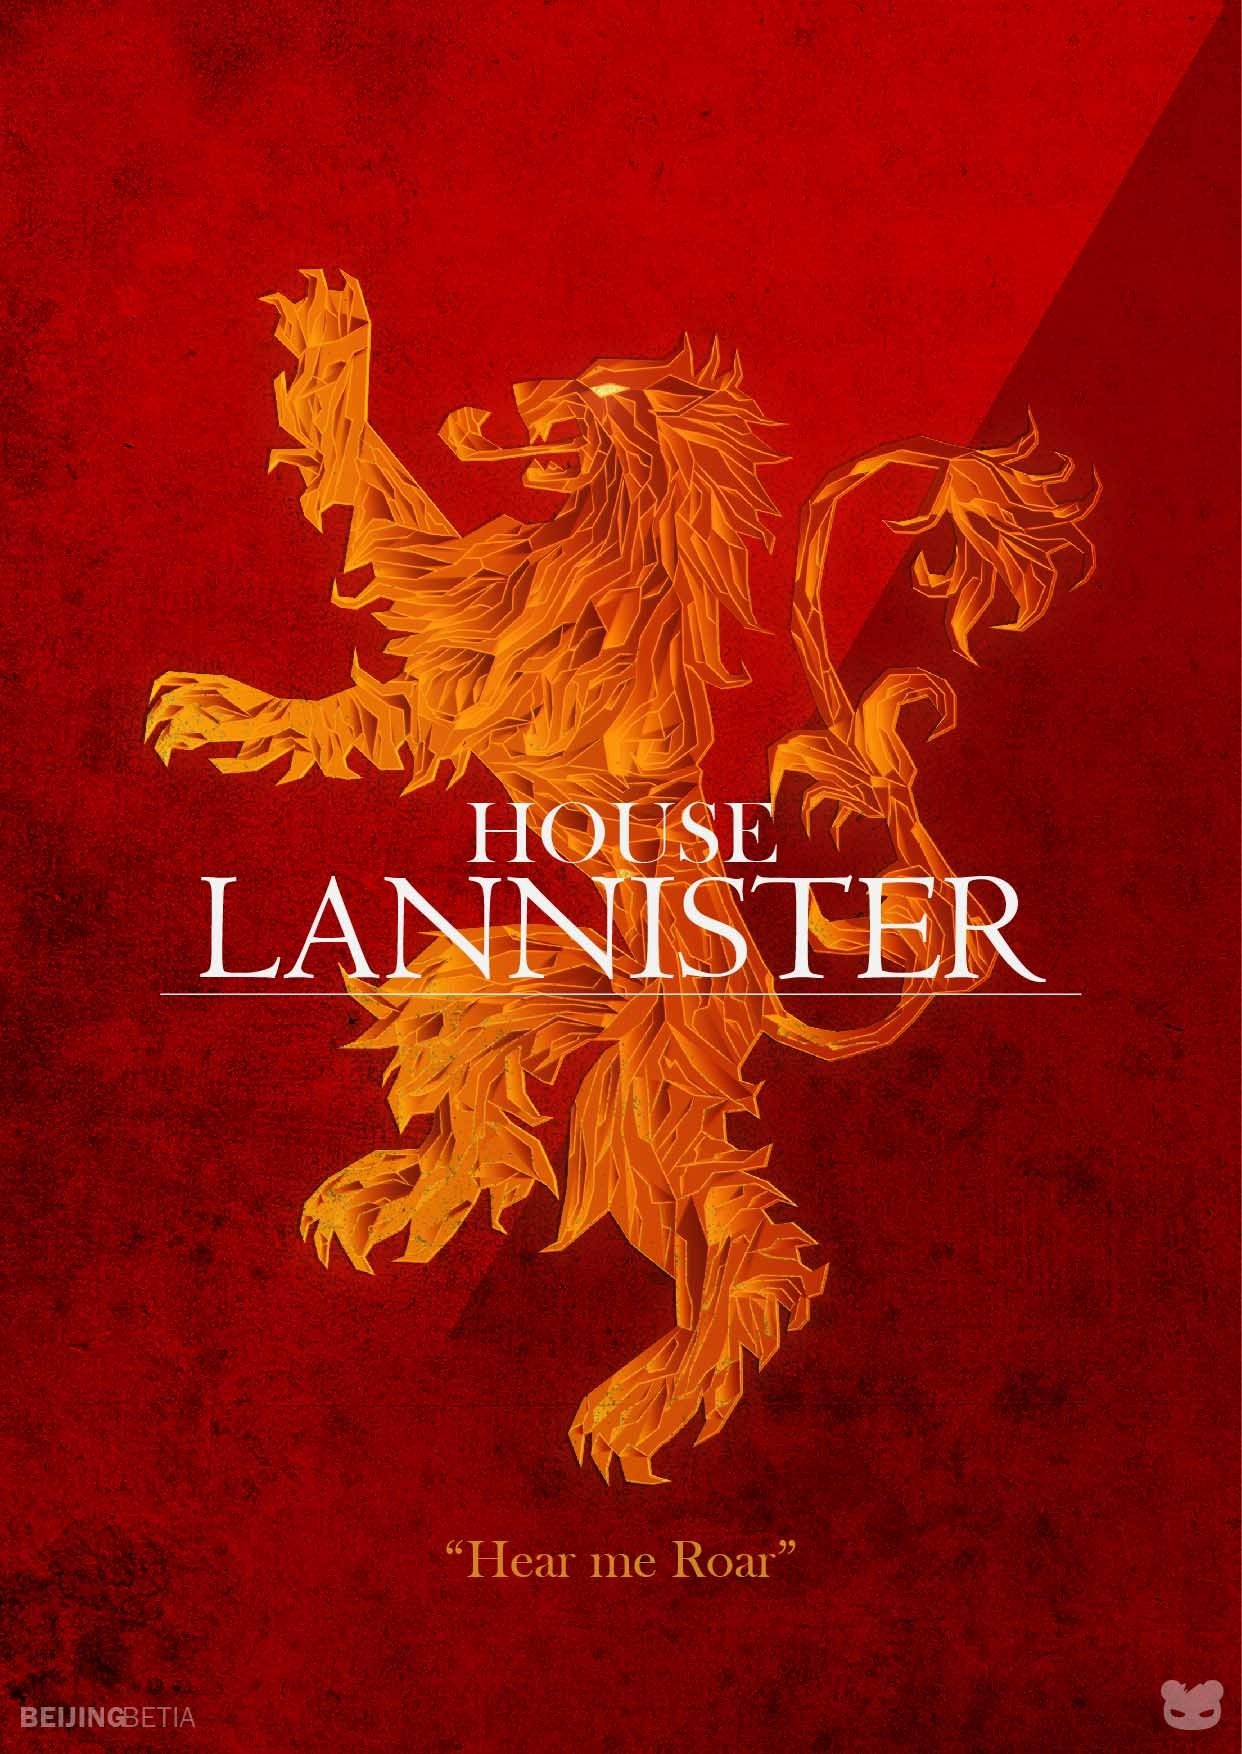 house lannister sigil wallpaper wallpapersafari. Black Bedroom Furniture Sets. Home Design Ideas